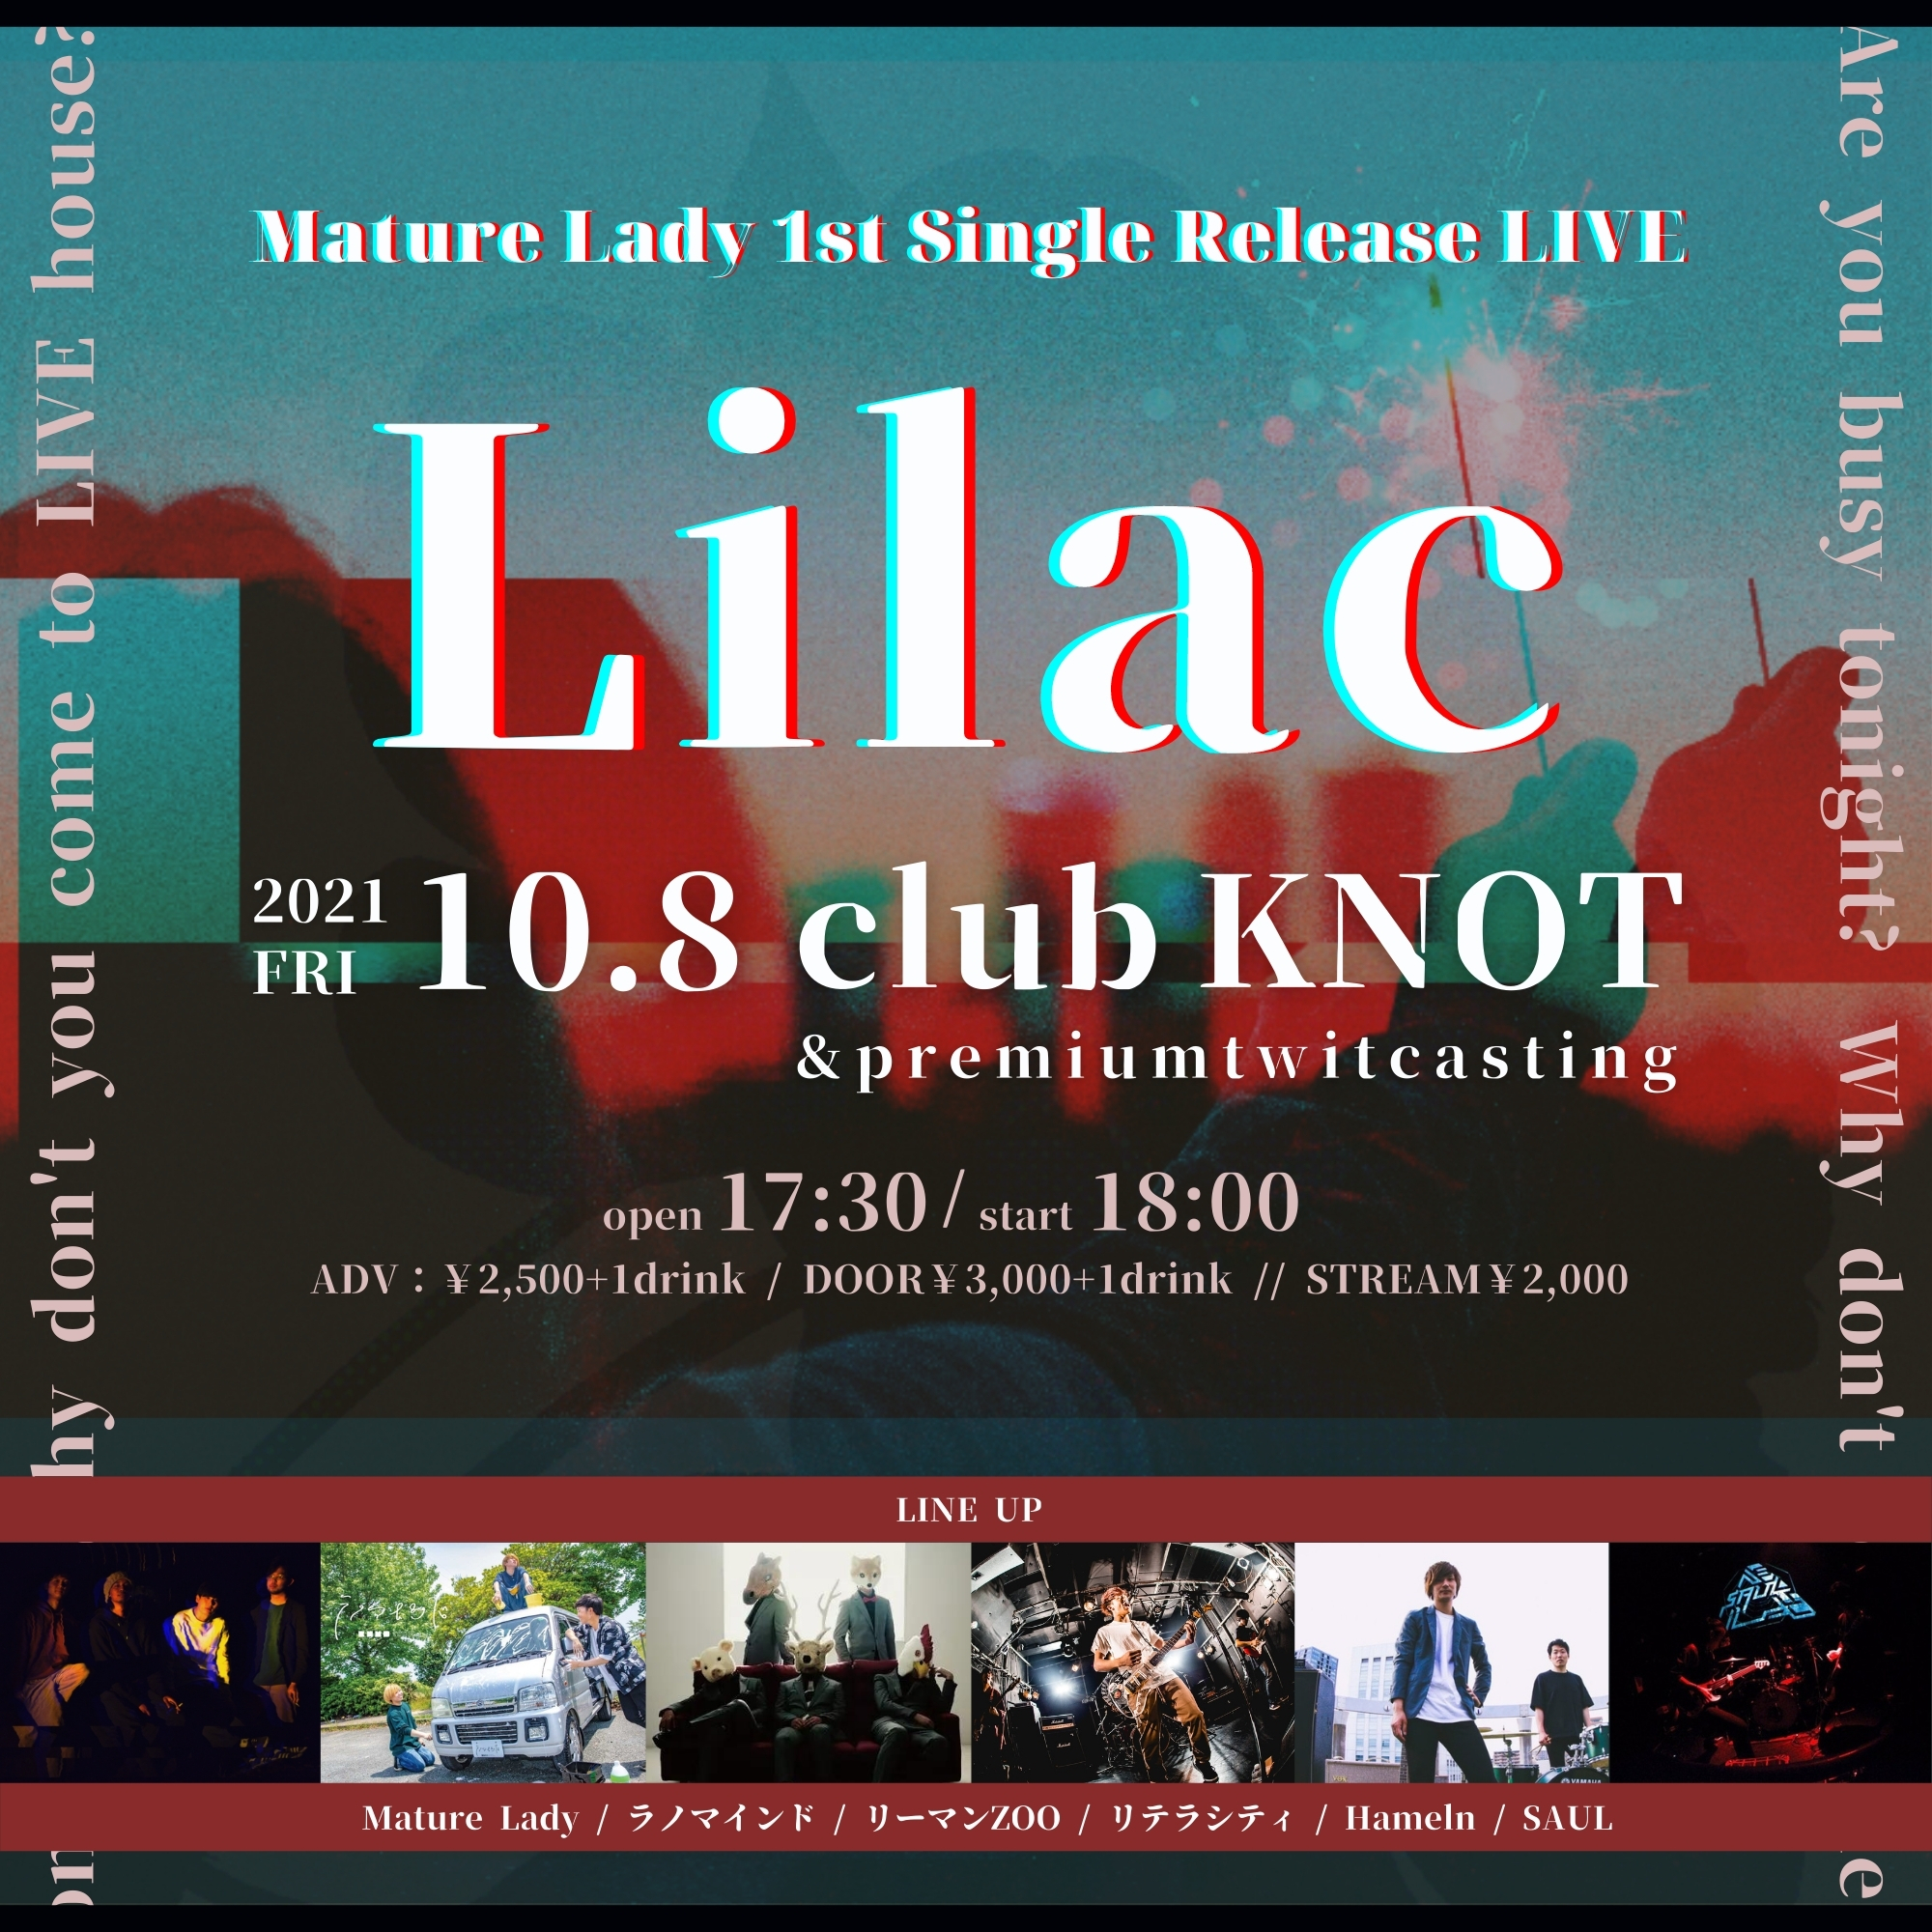 Lilac Mature Lady 1st Single Release LIVE